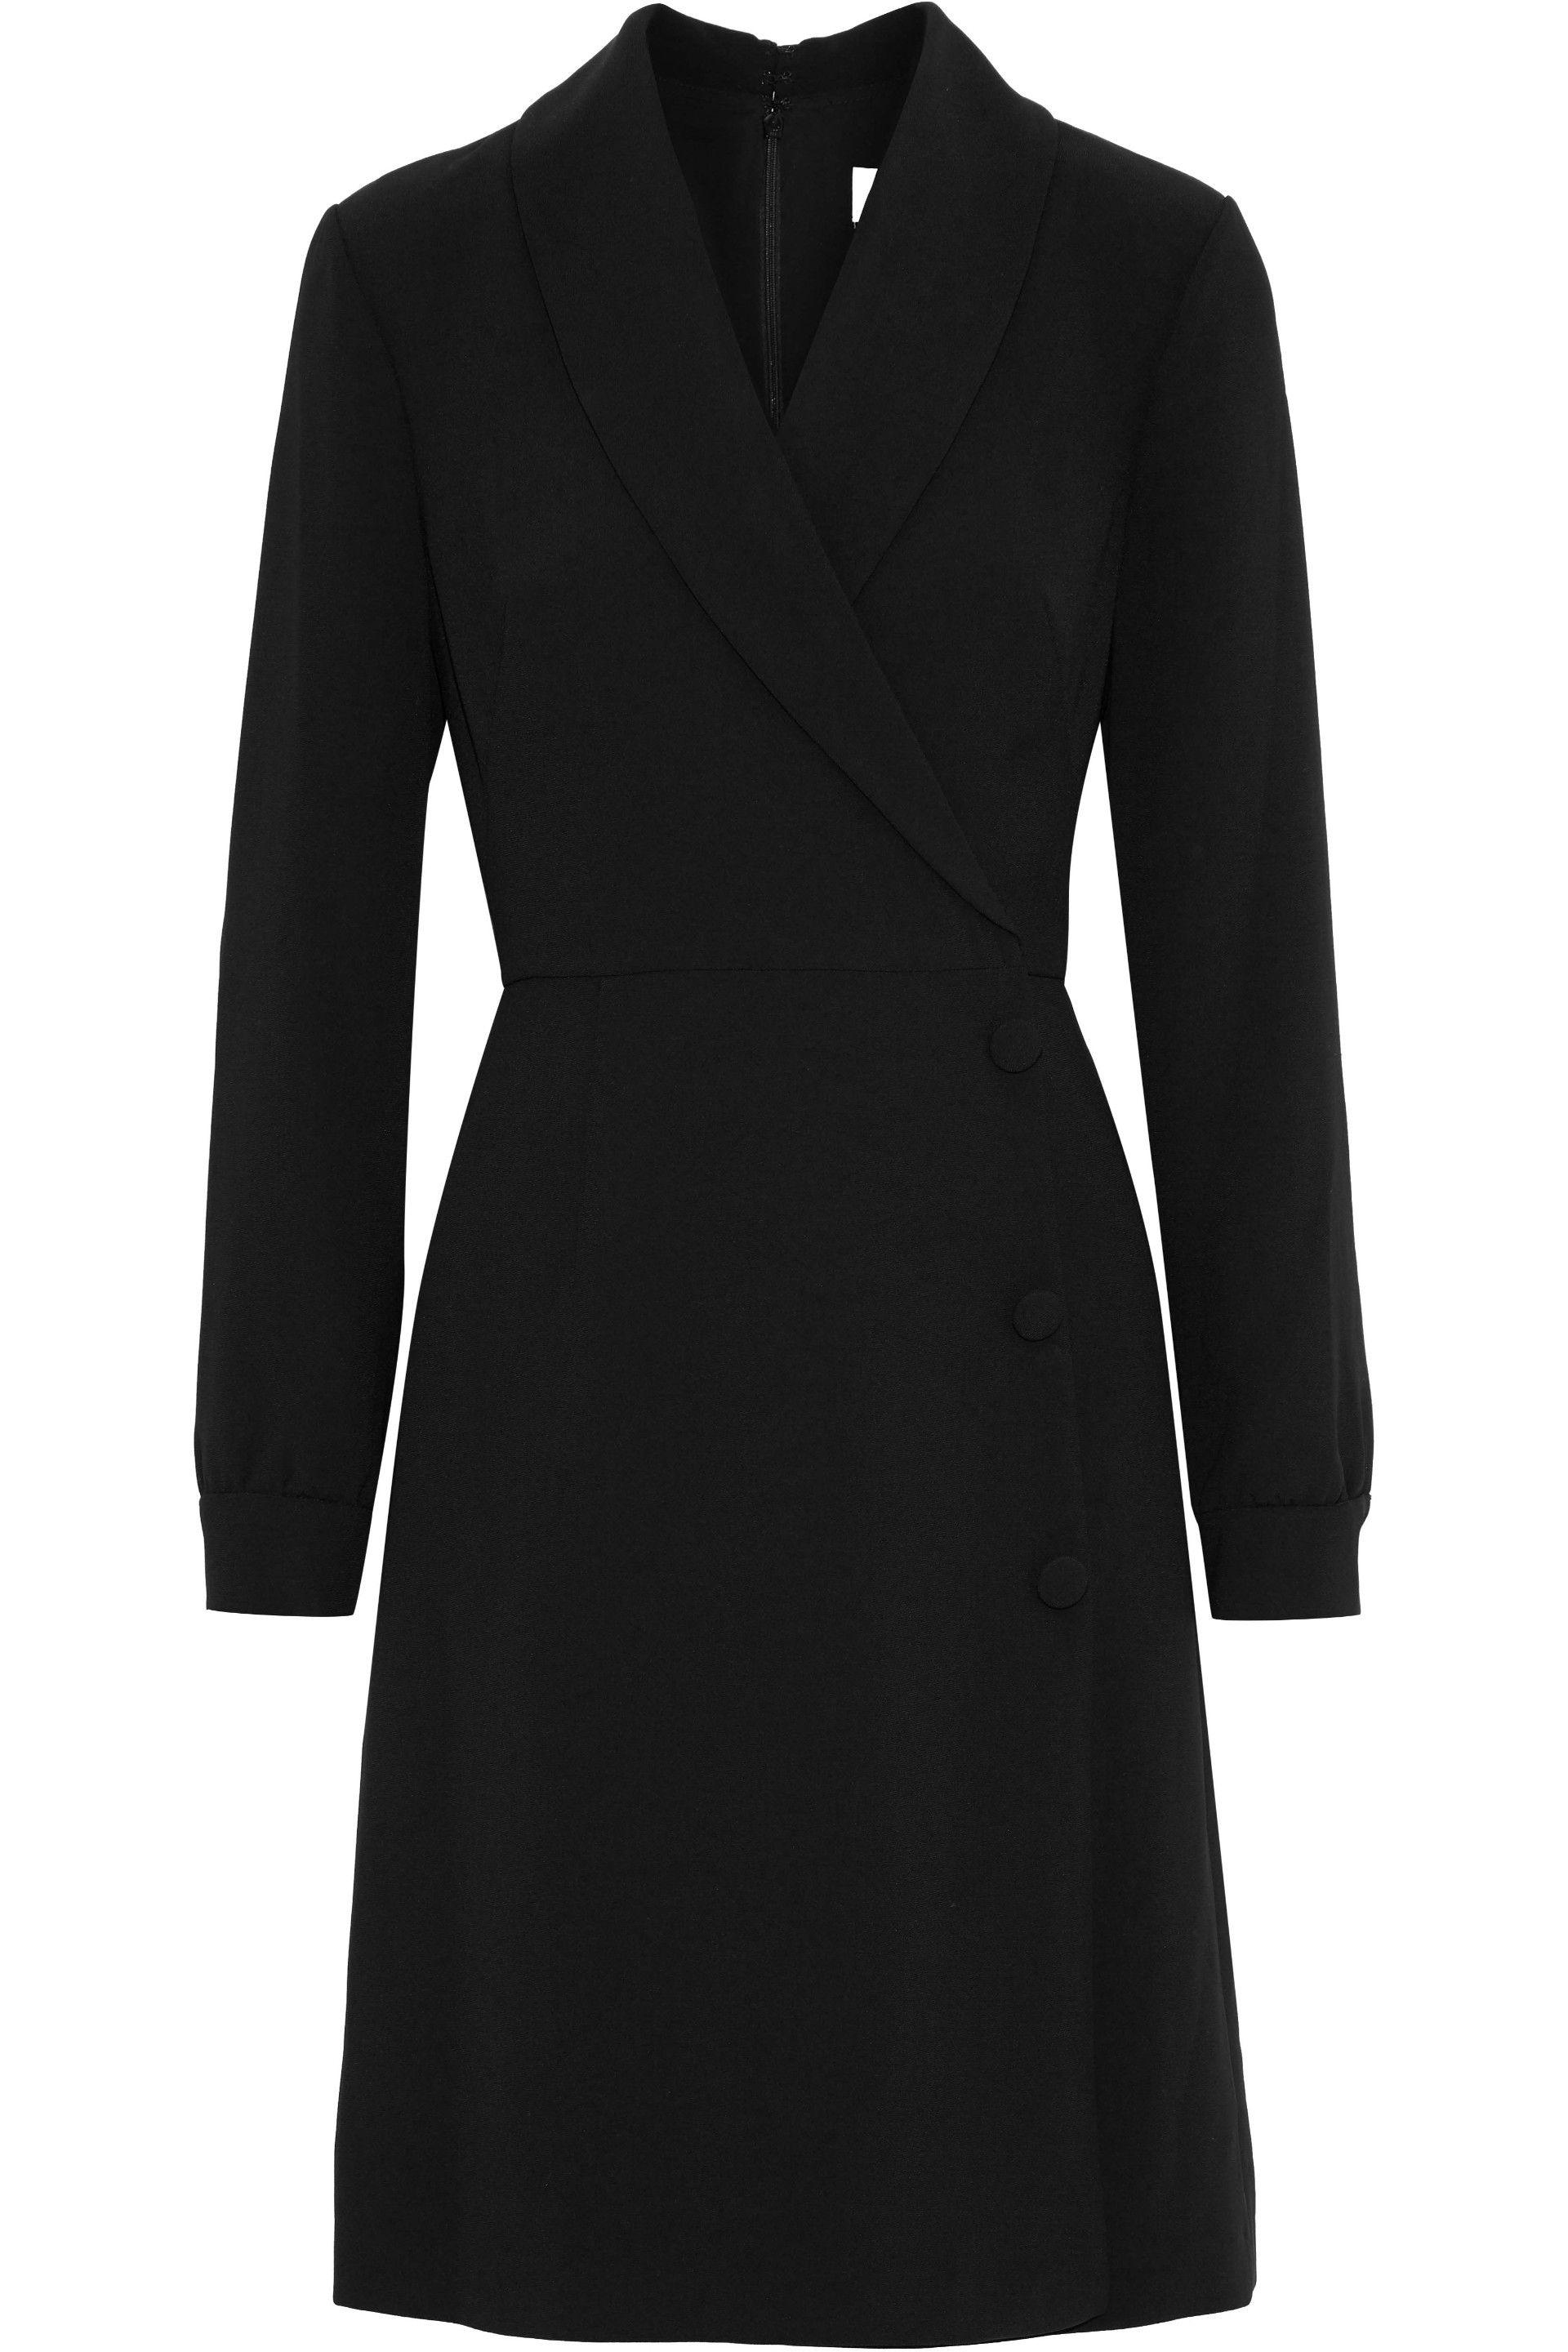 cacb453b83 mikael-aghal-Black-Wrap-effect-Crepe-Dress.jpeg